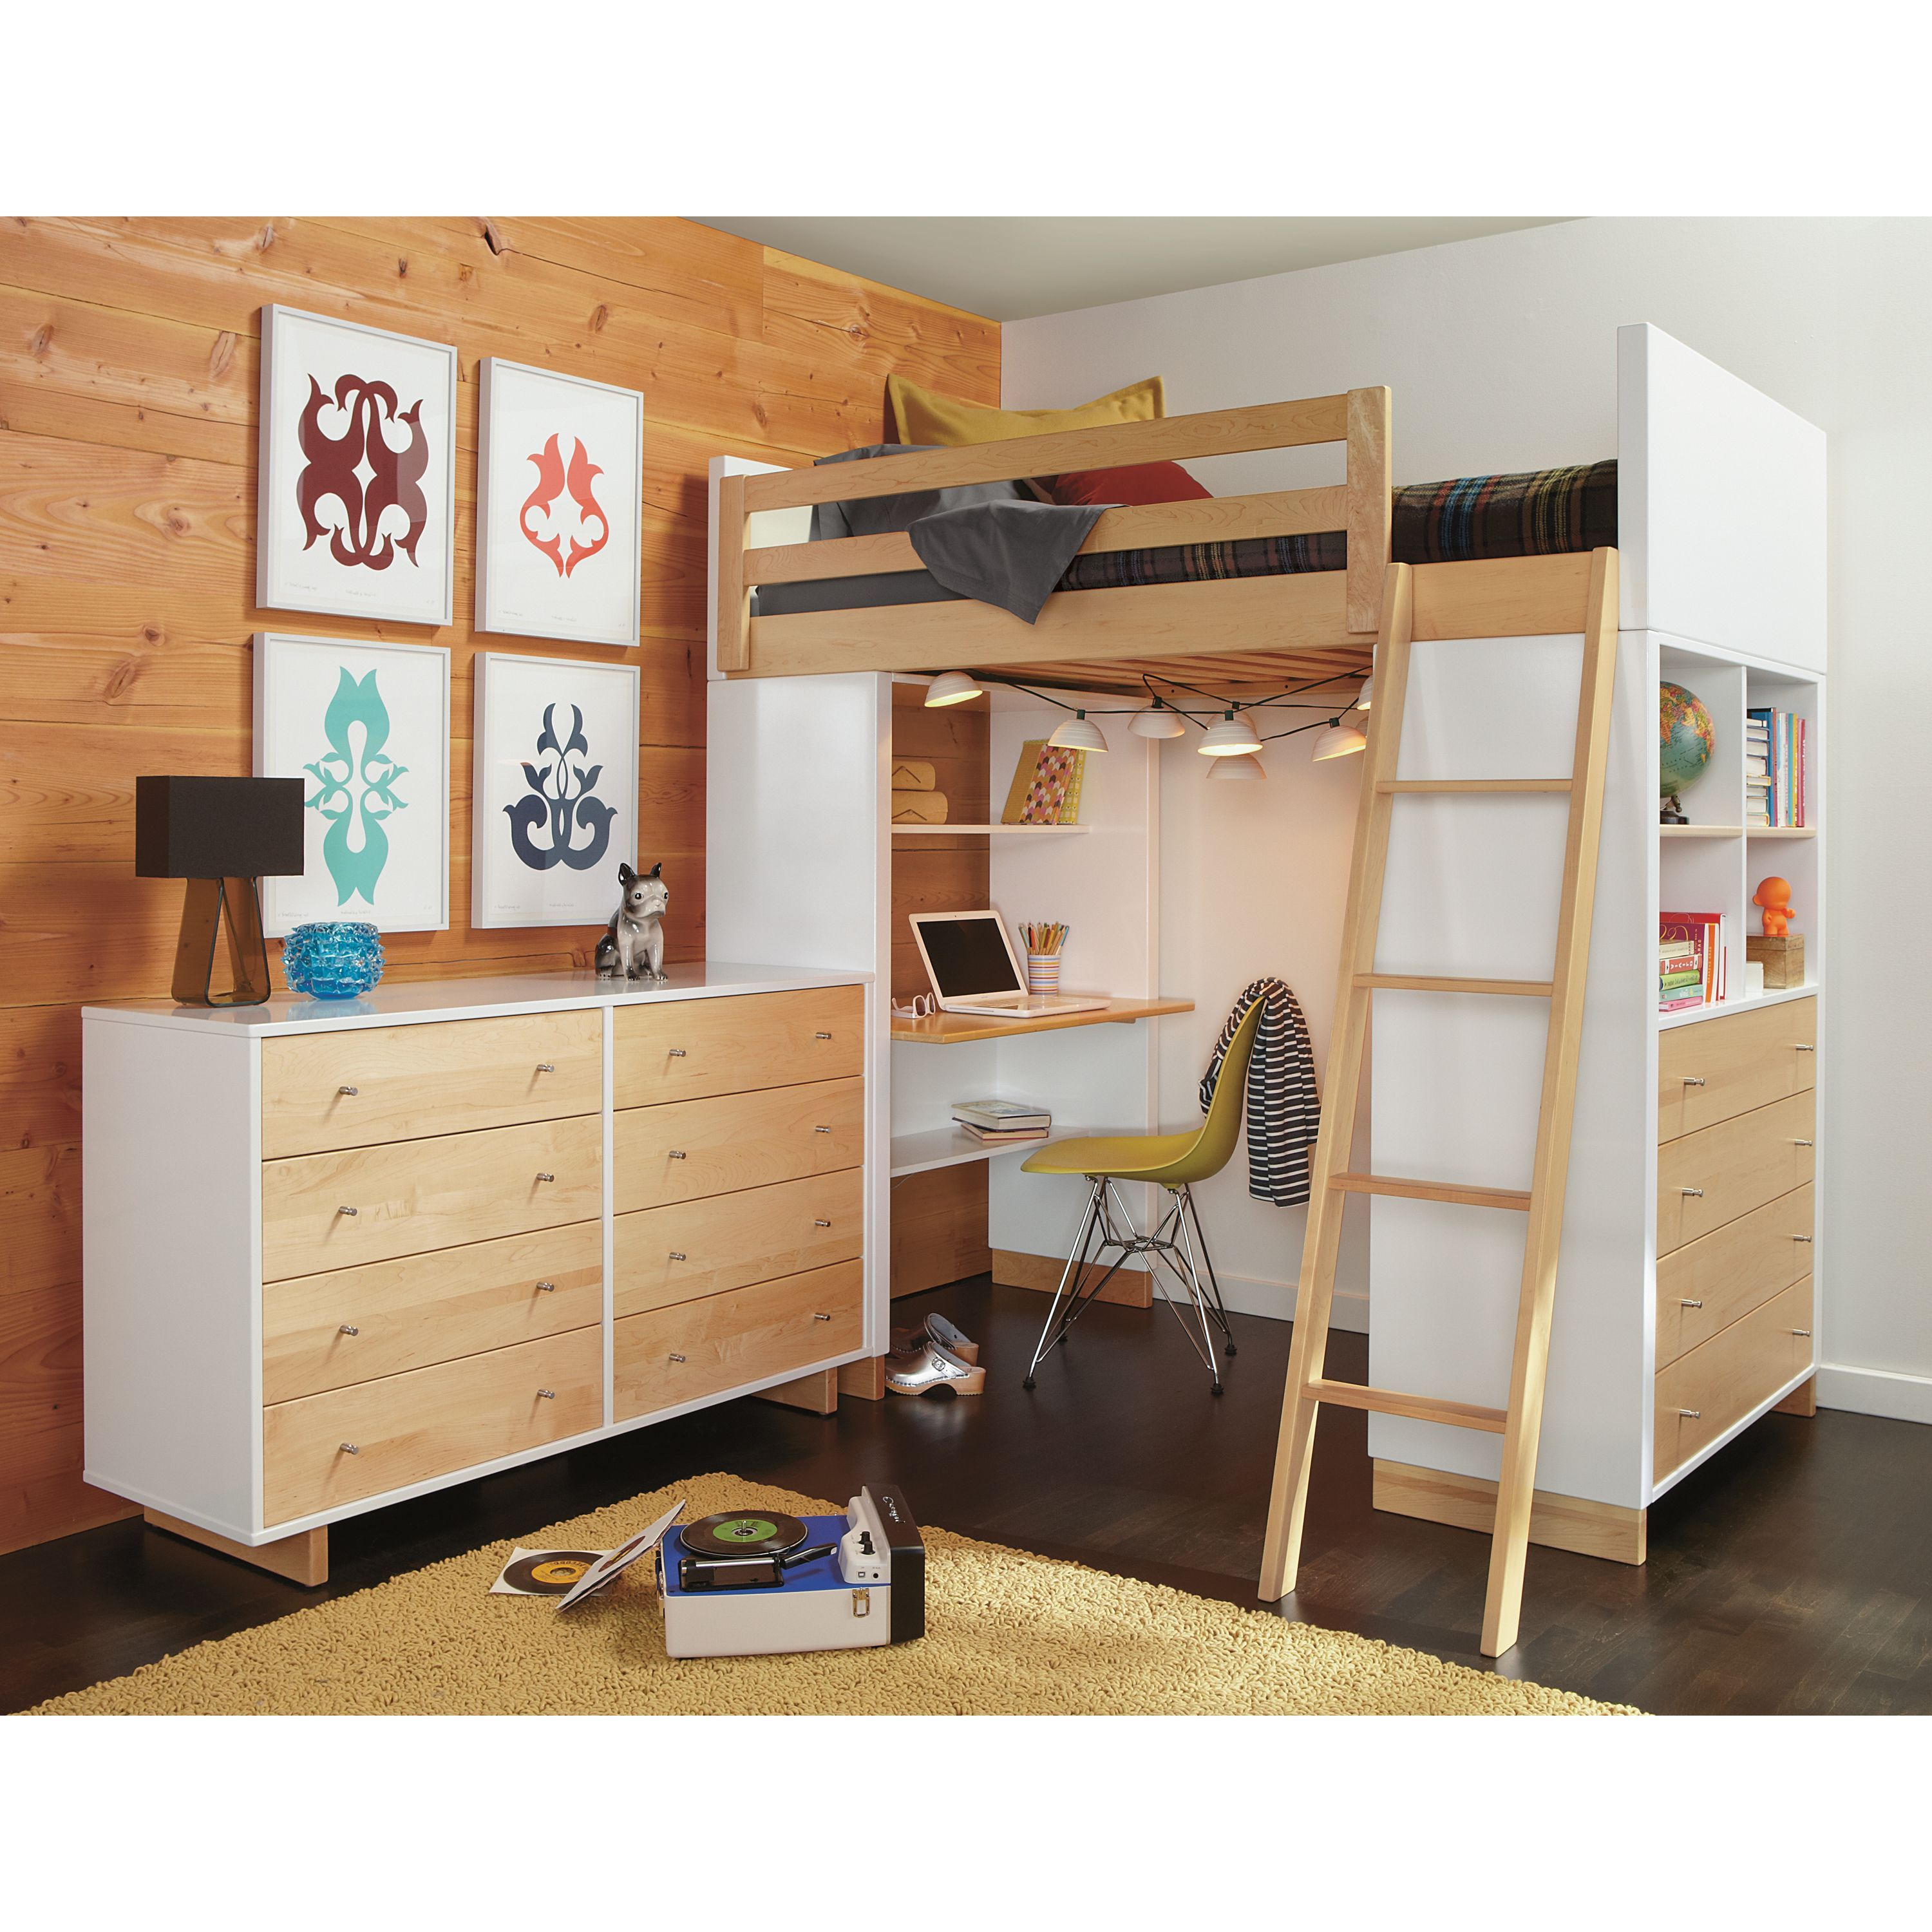 Loft bed with desk underneath  Moda Loft Beds with Desk and Dresser Options  Products  Pinterest